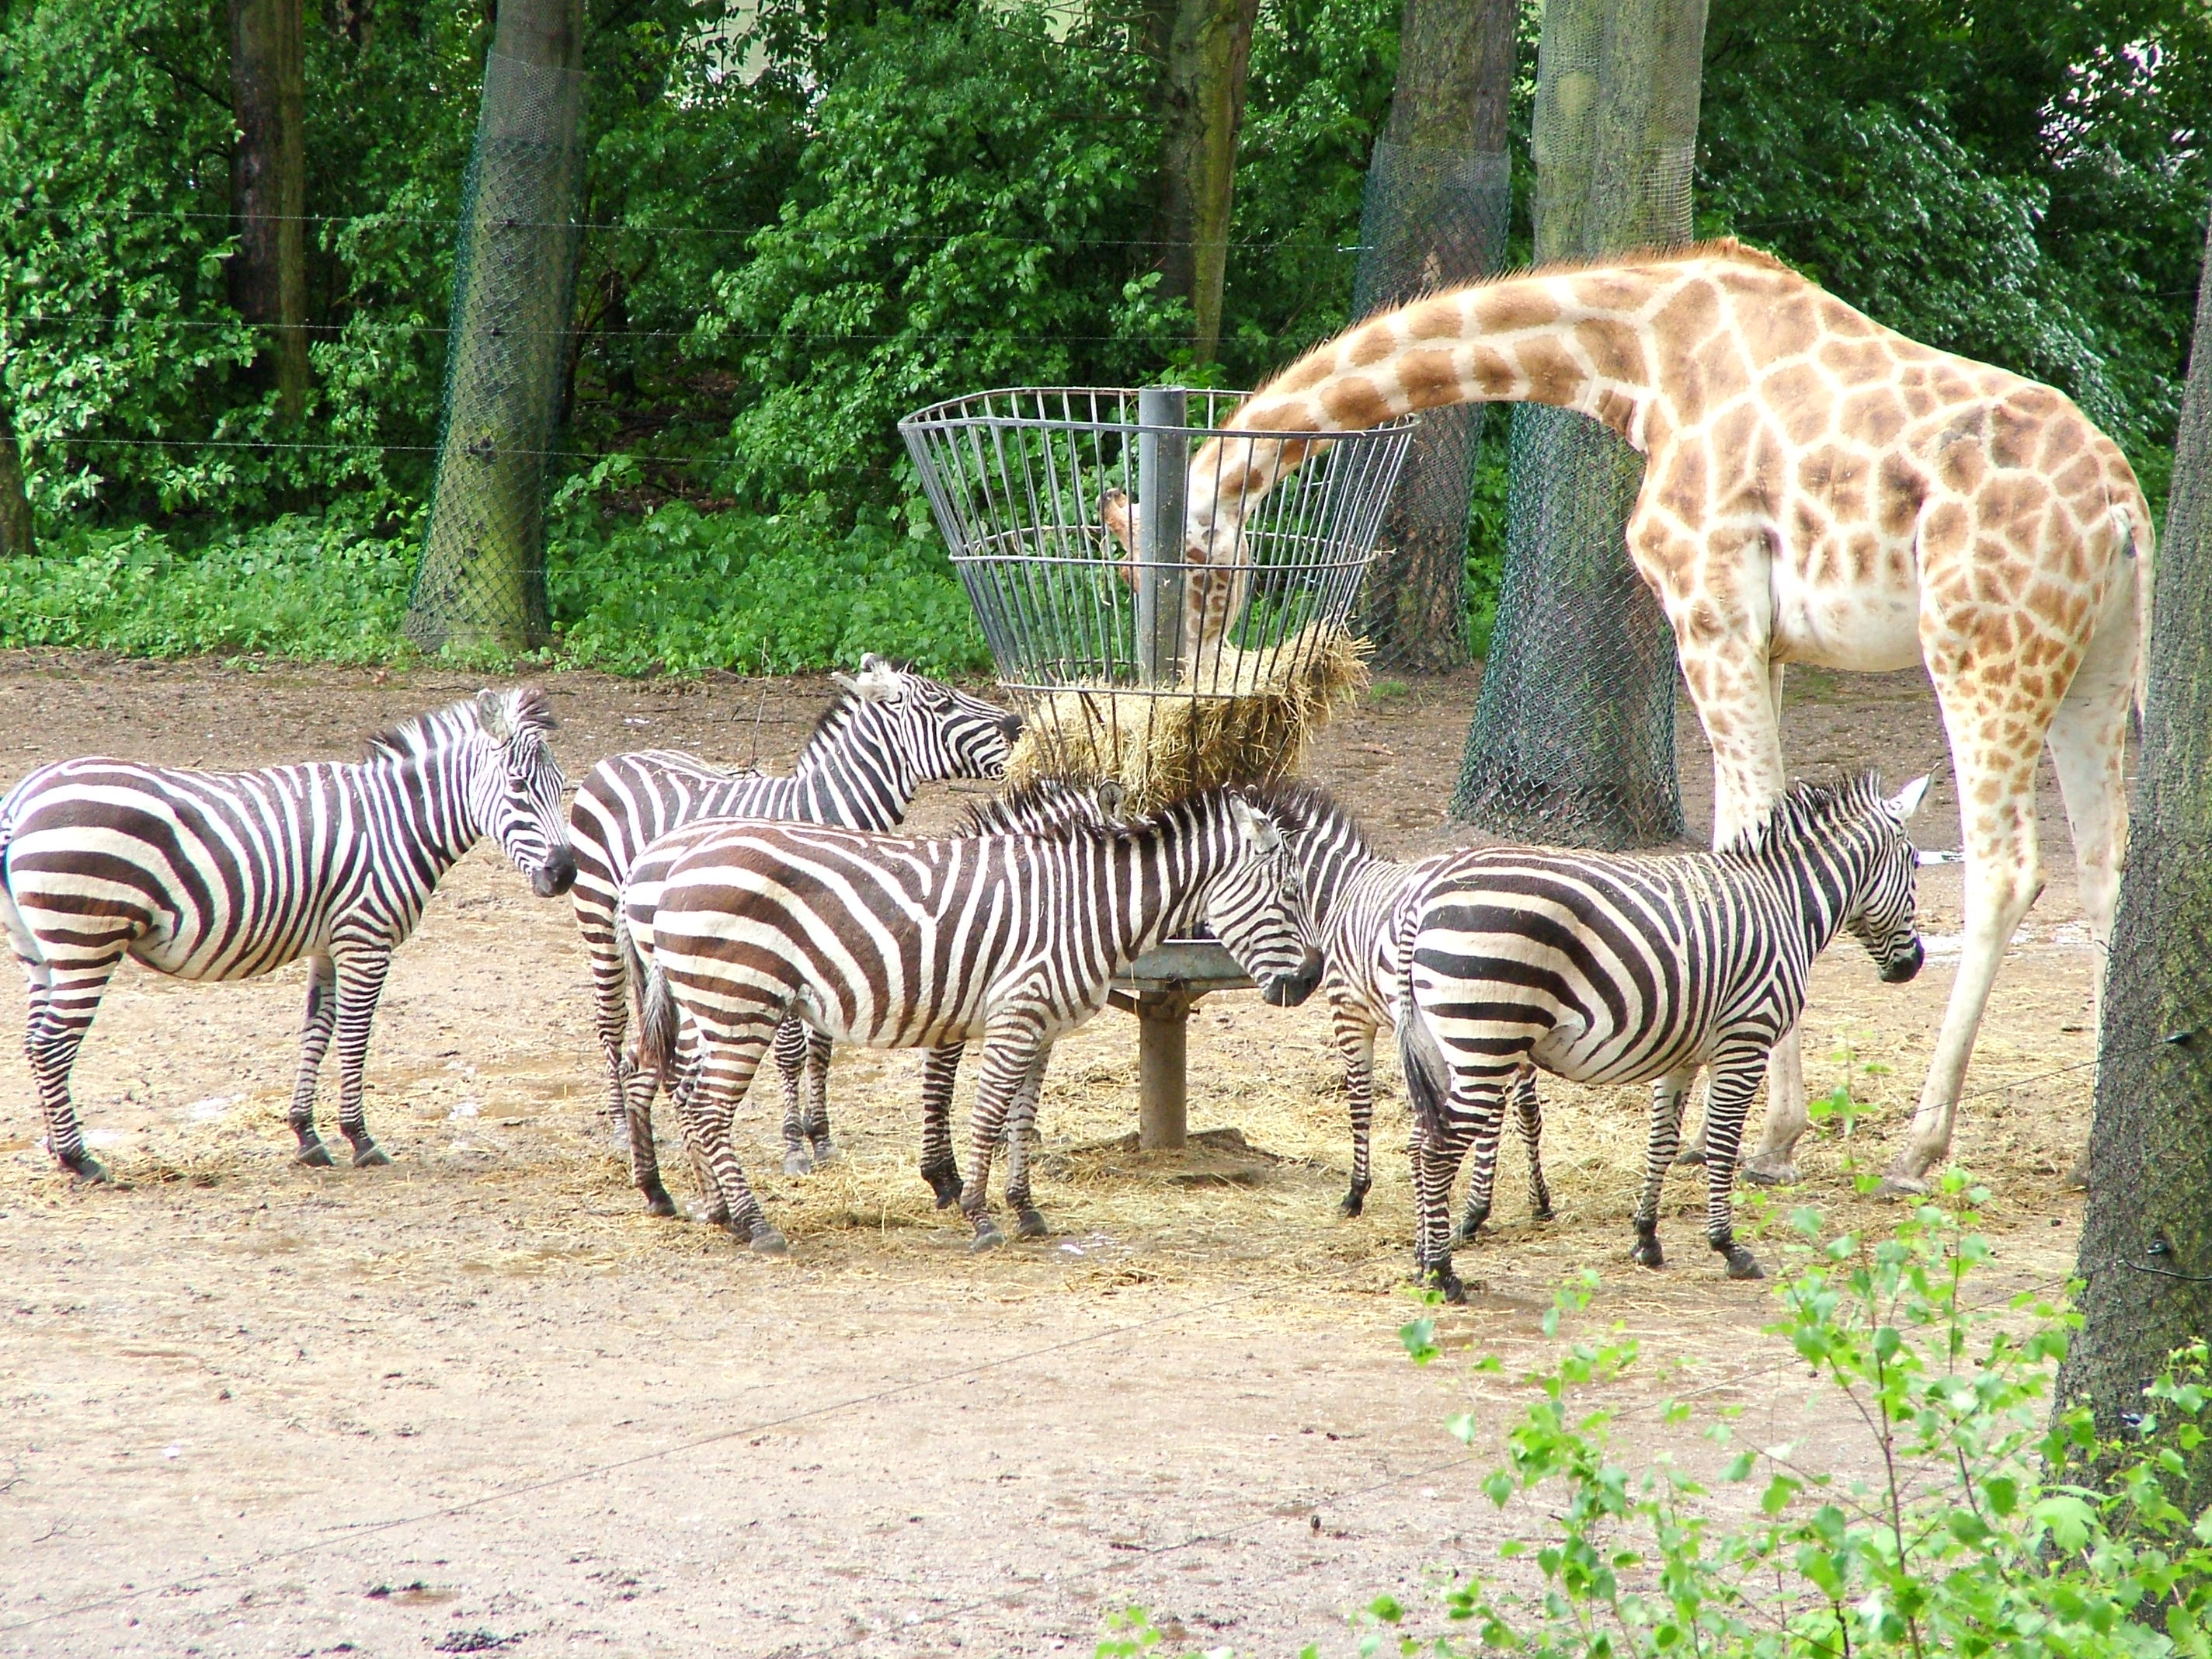 zebras and giraffes - photo #15